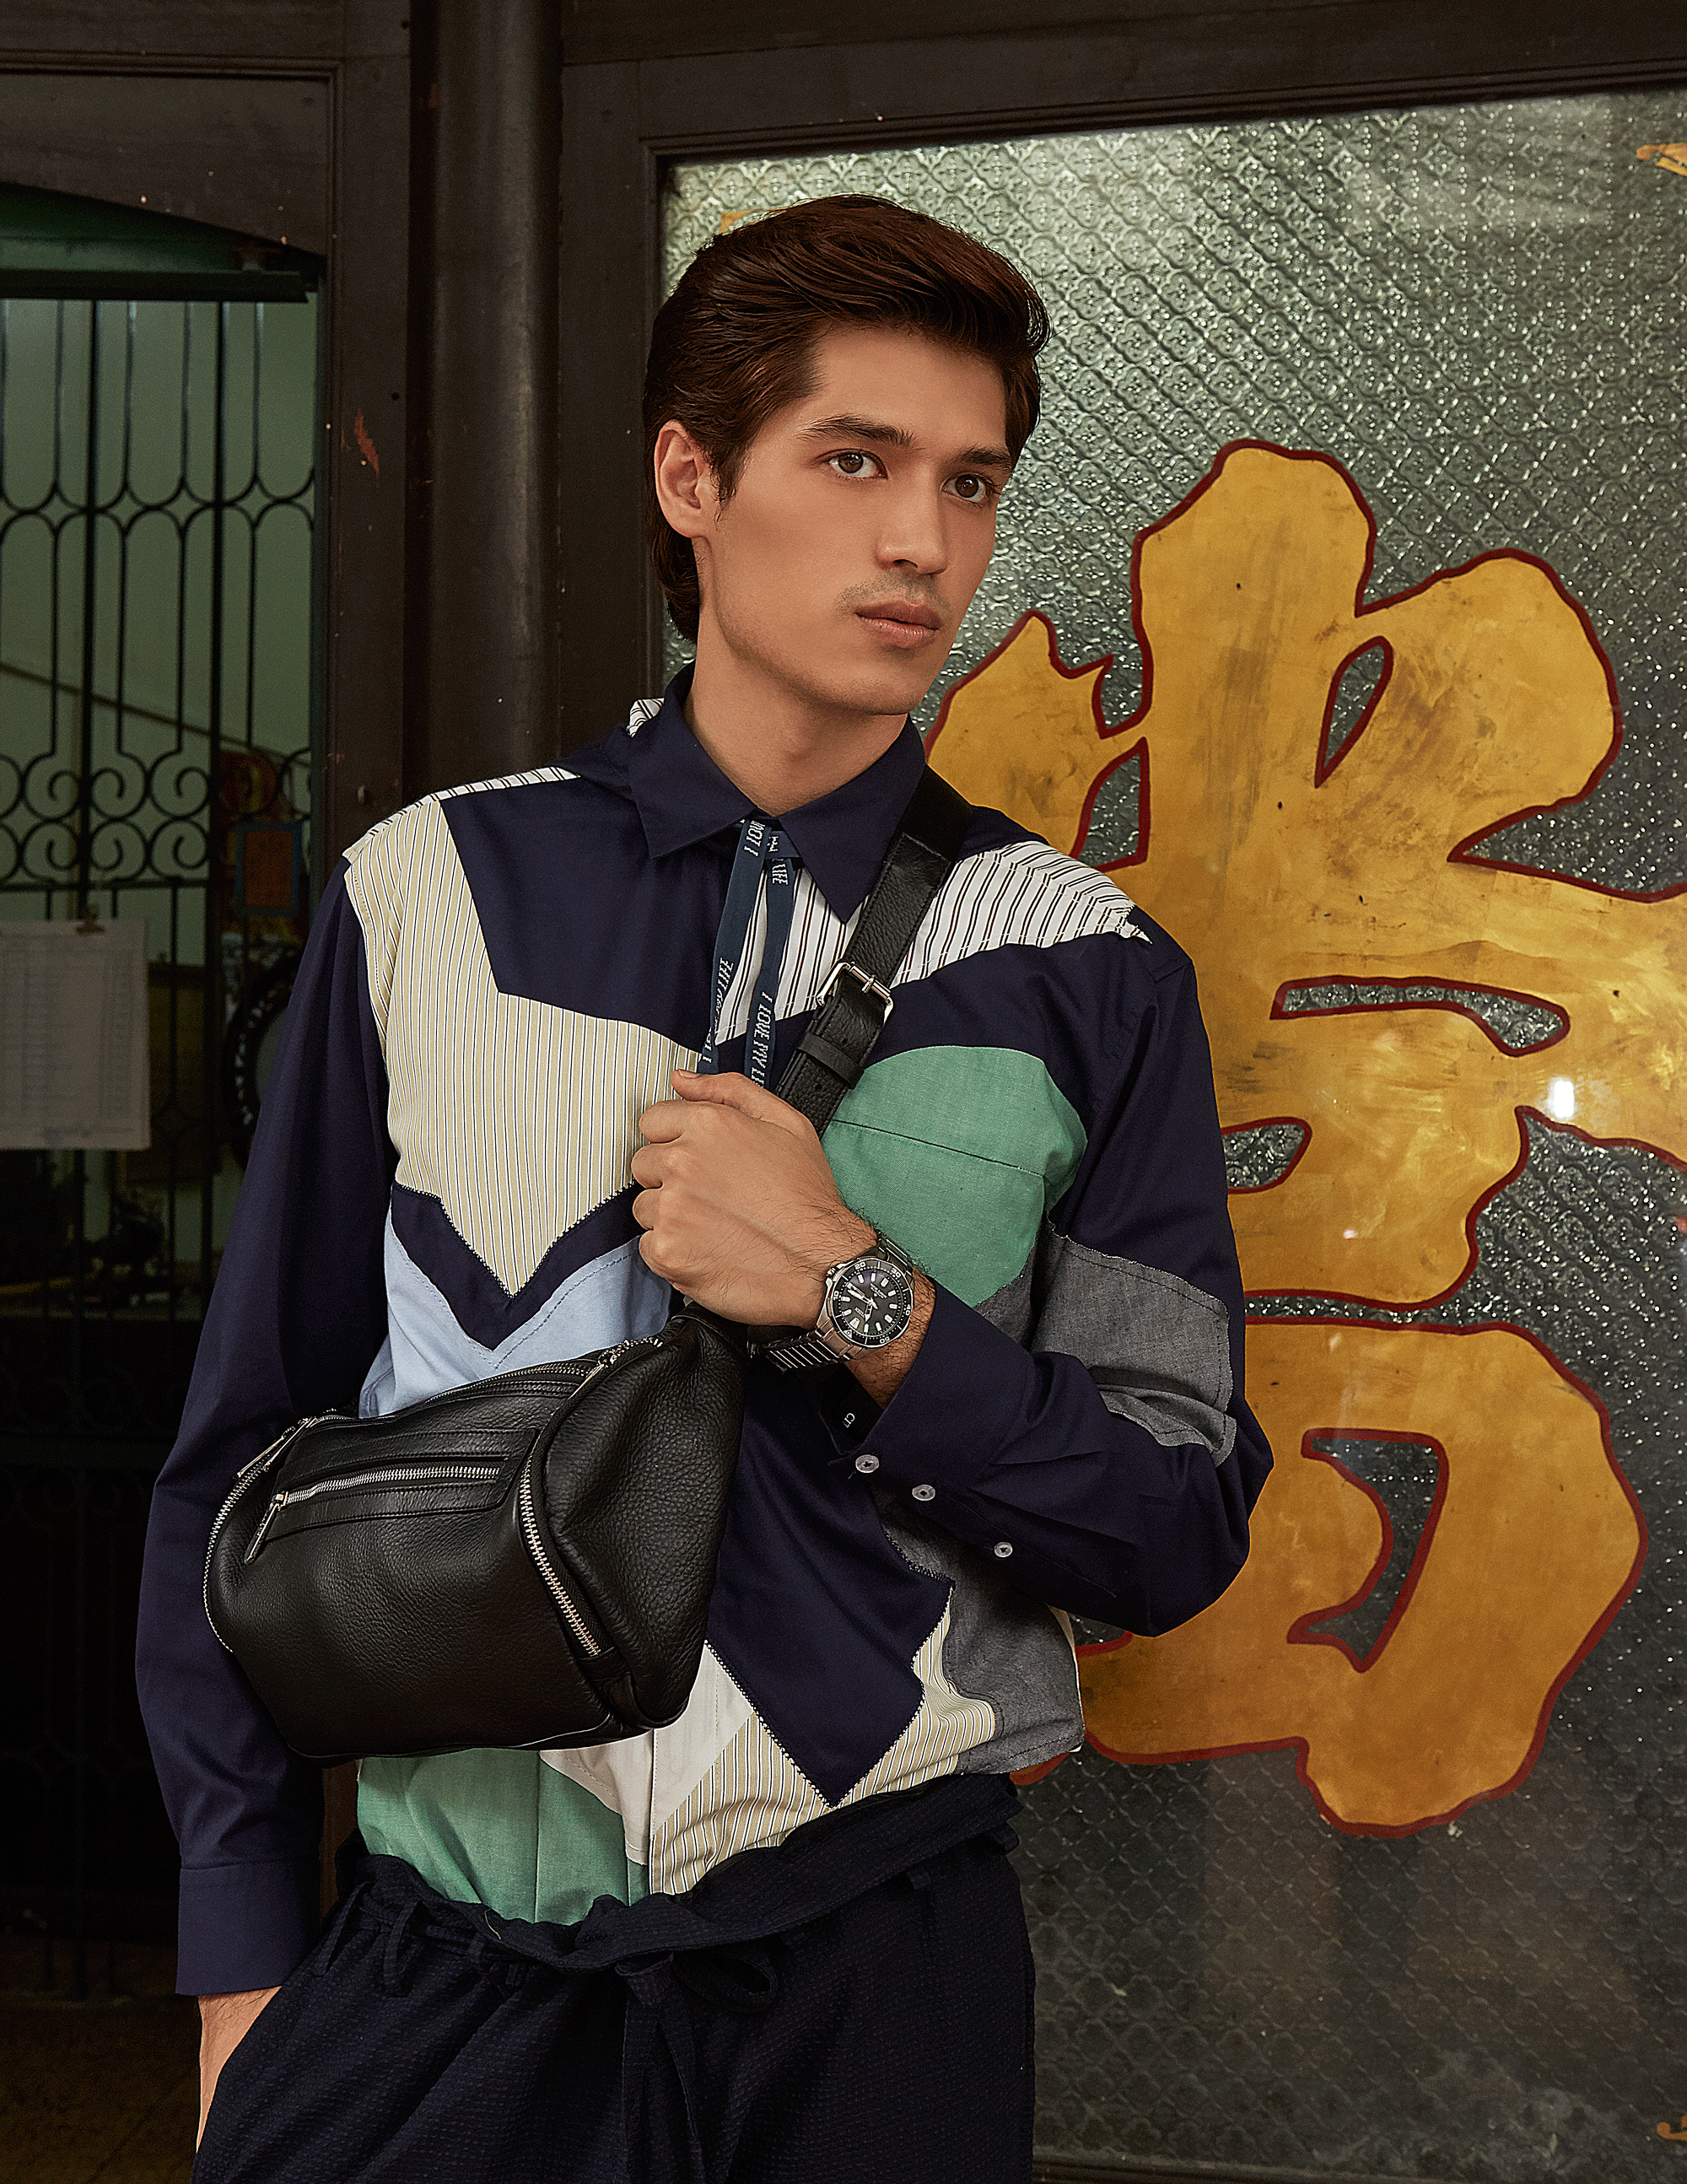 shirt : Everyday Karmakamet / shorts : Paul Smith / Bag : CONTAINER  watch :CITIZEN Promaster Super Titanium (NEW 2018 collection)